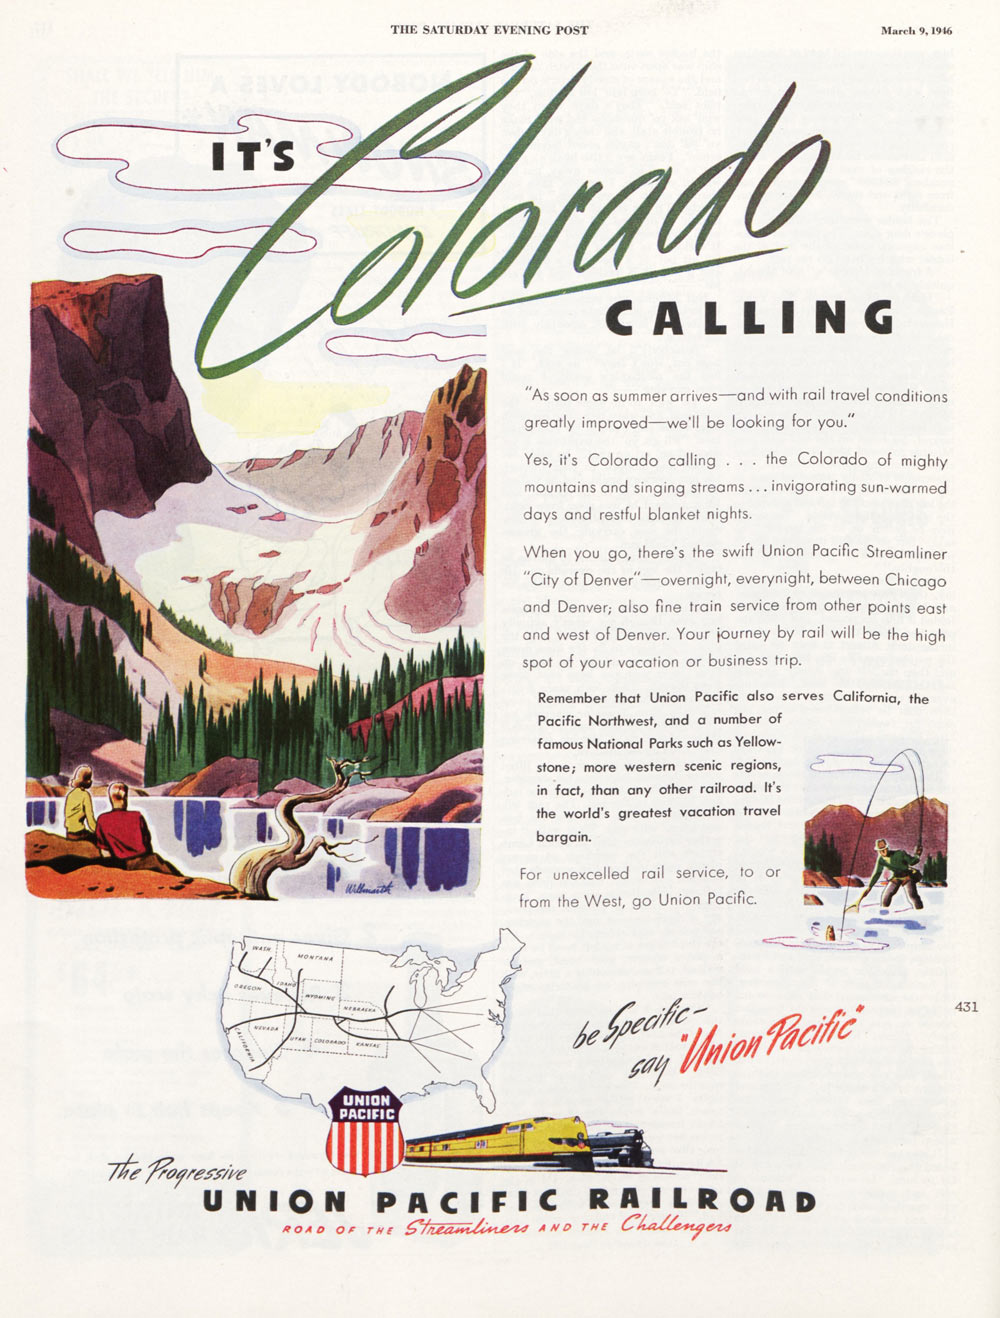 Vintage Ads Mid Century Travel By Boat Bus Plane And Train The Saturday Evening Post